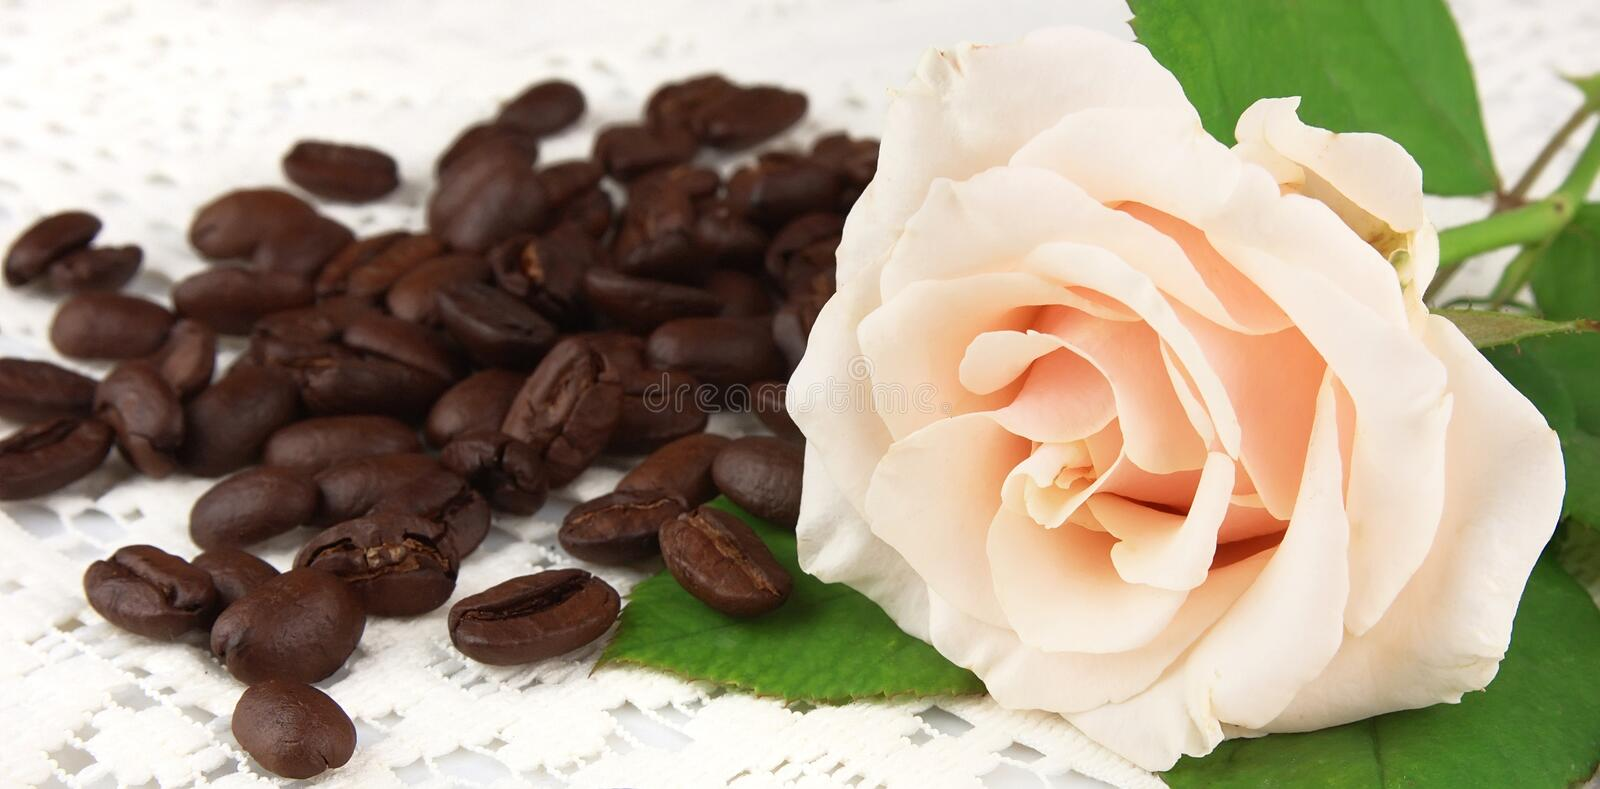 Grains of coffee with a white rose